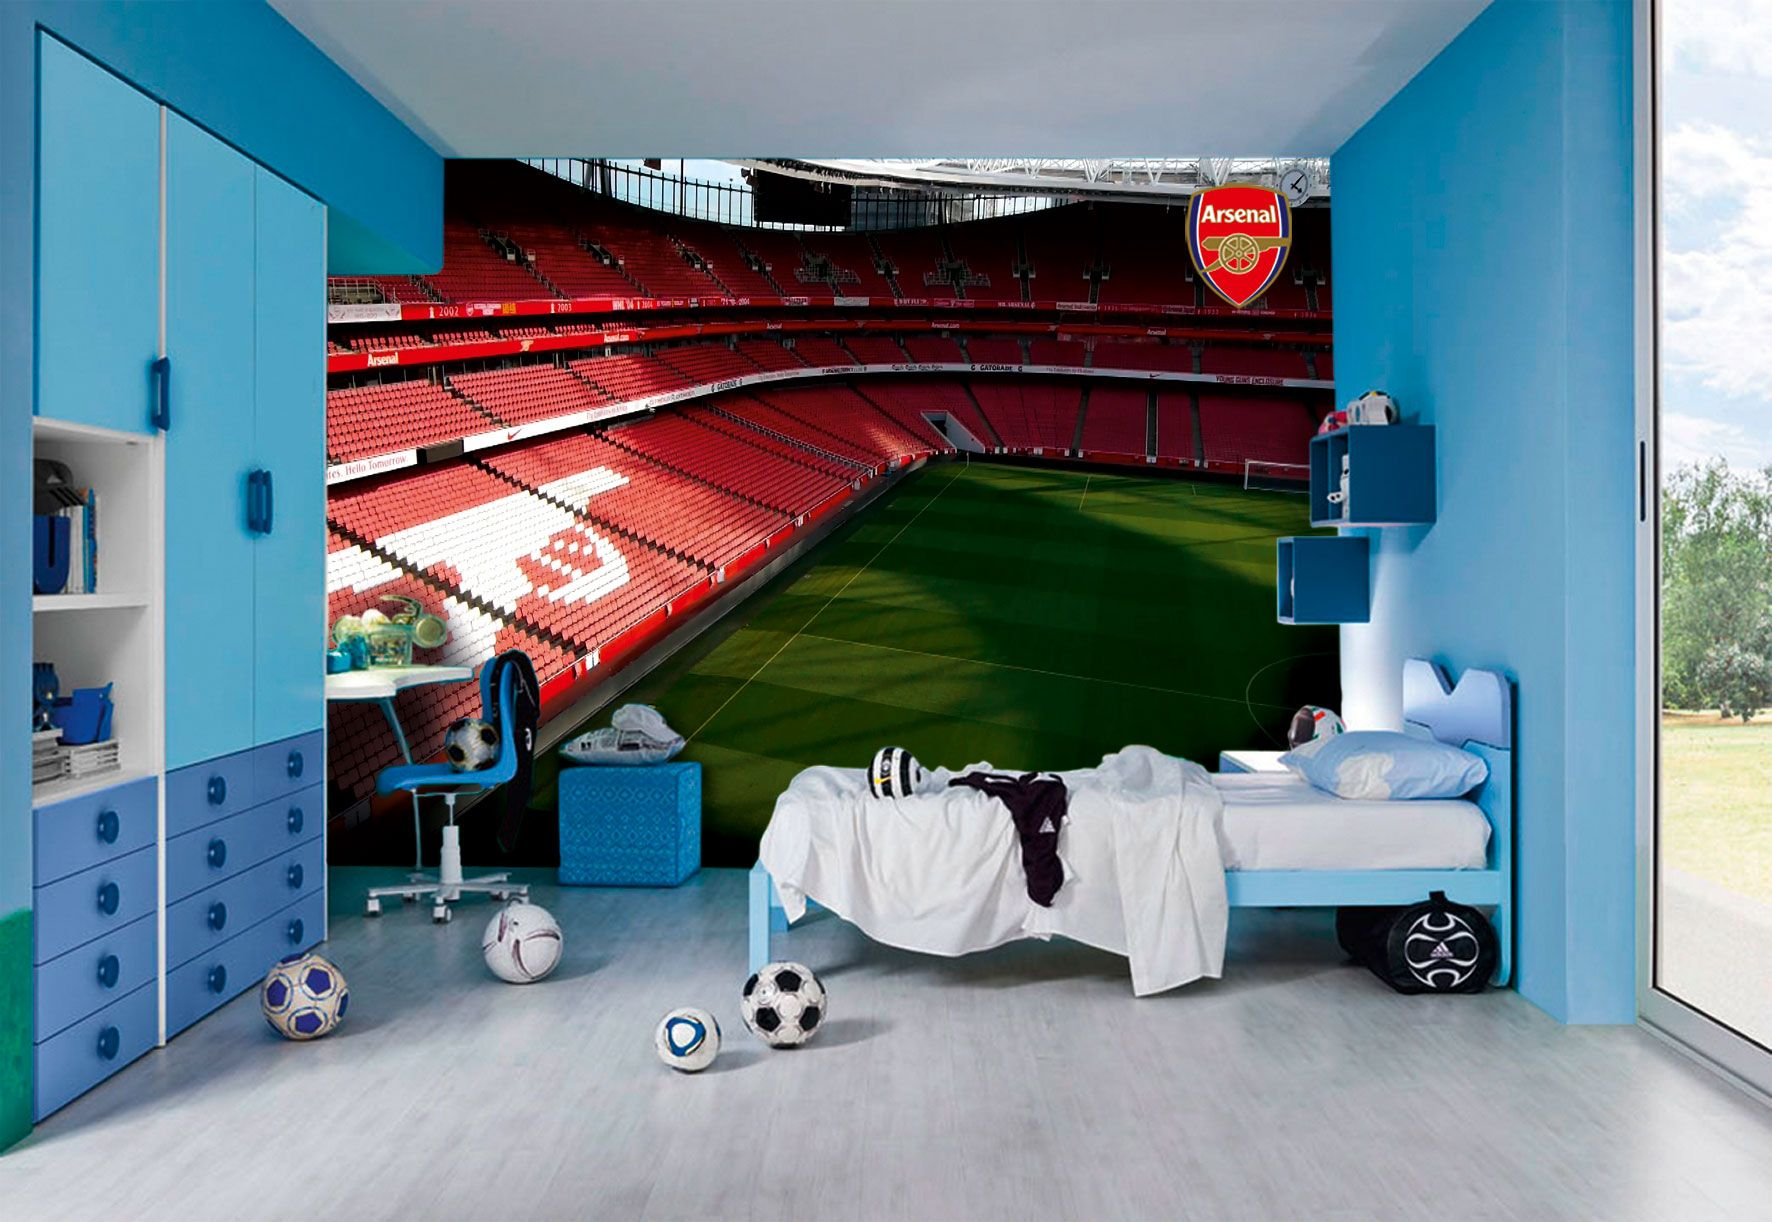 Best Pin Oleh Santi Sasmitha Di Arsenal Rooms Decoration 400 x 300